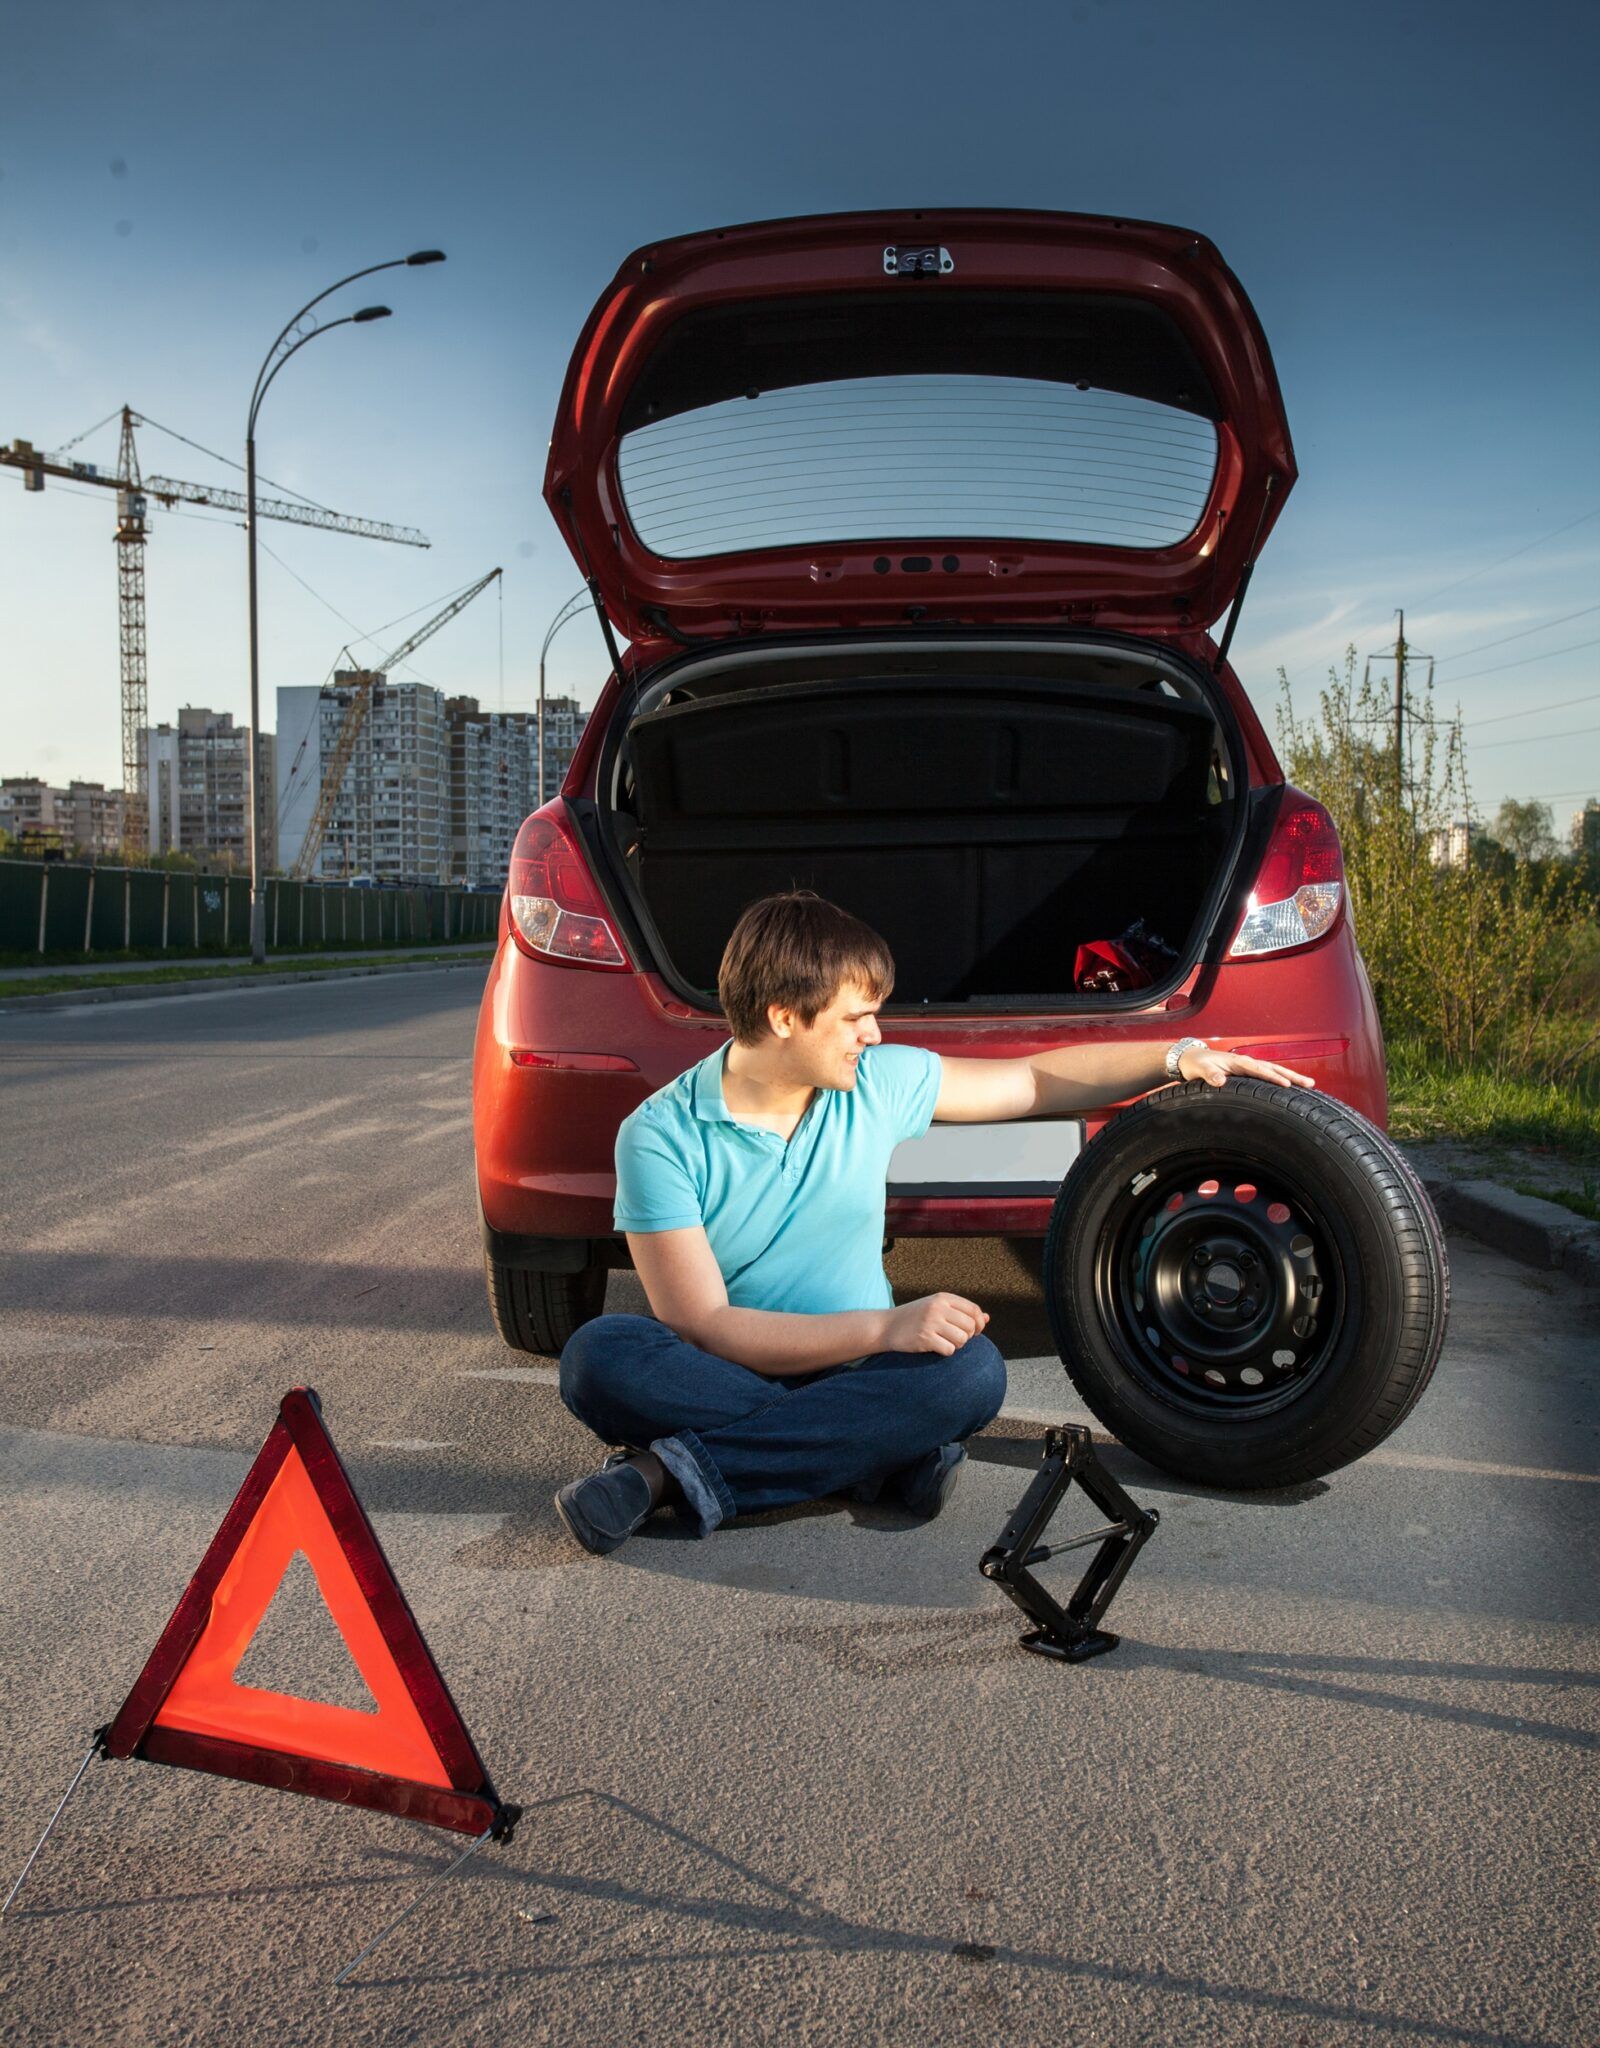 road safety triangles essential things to keep in your car